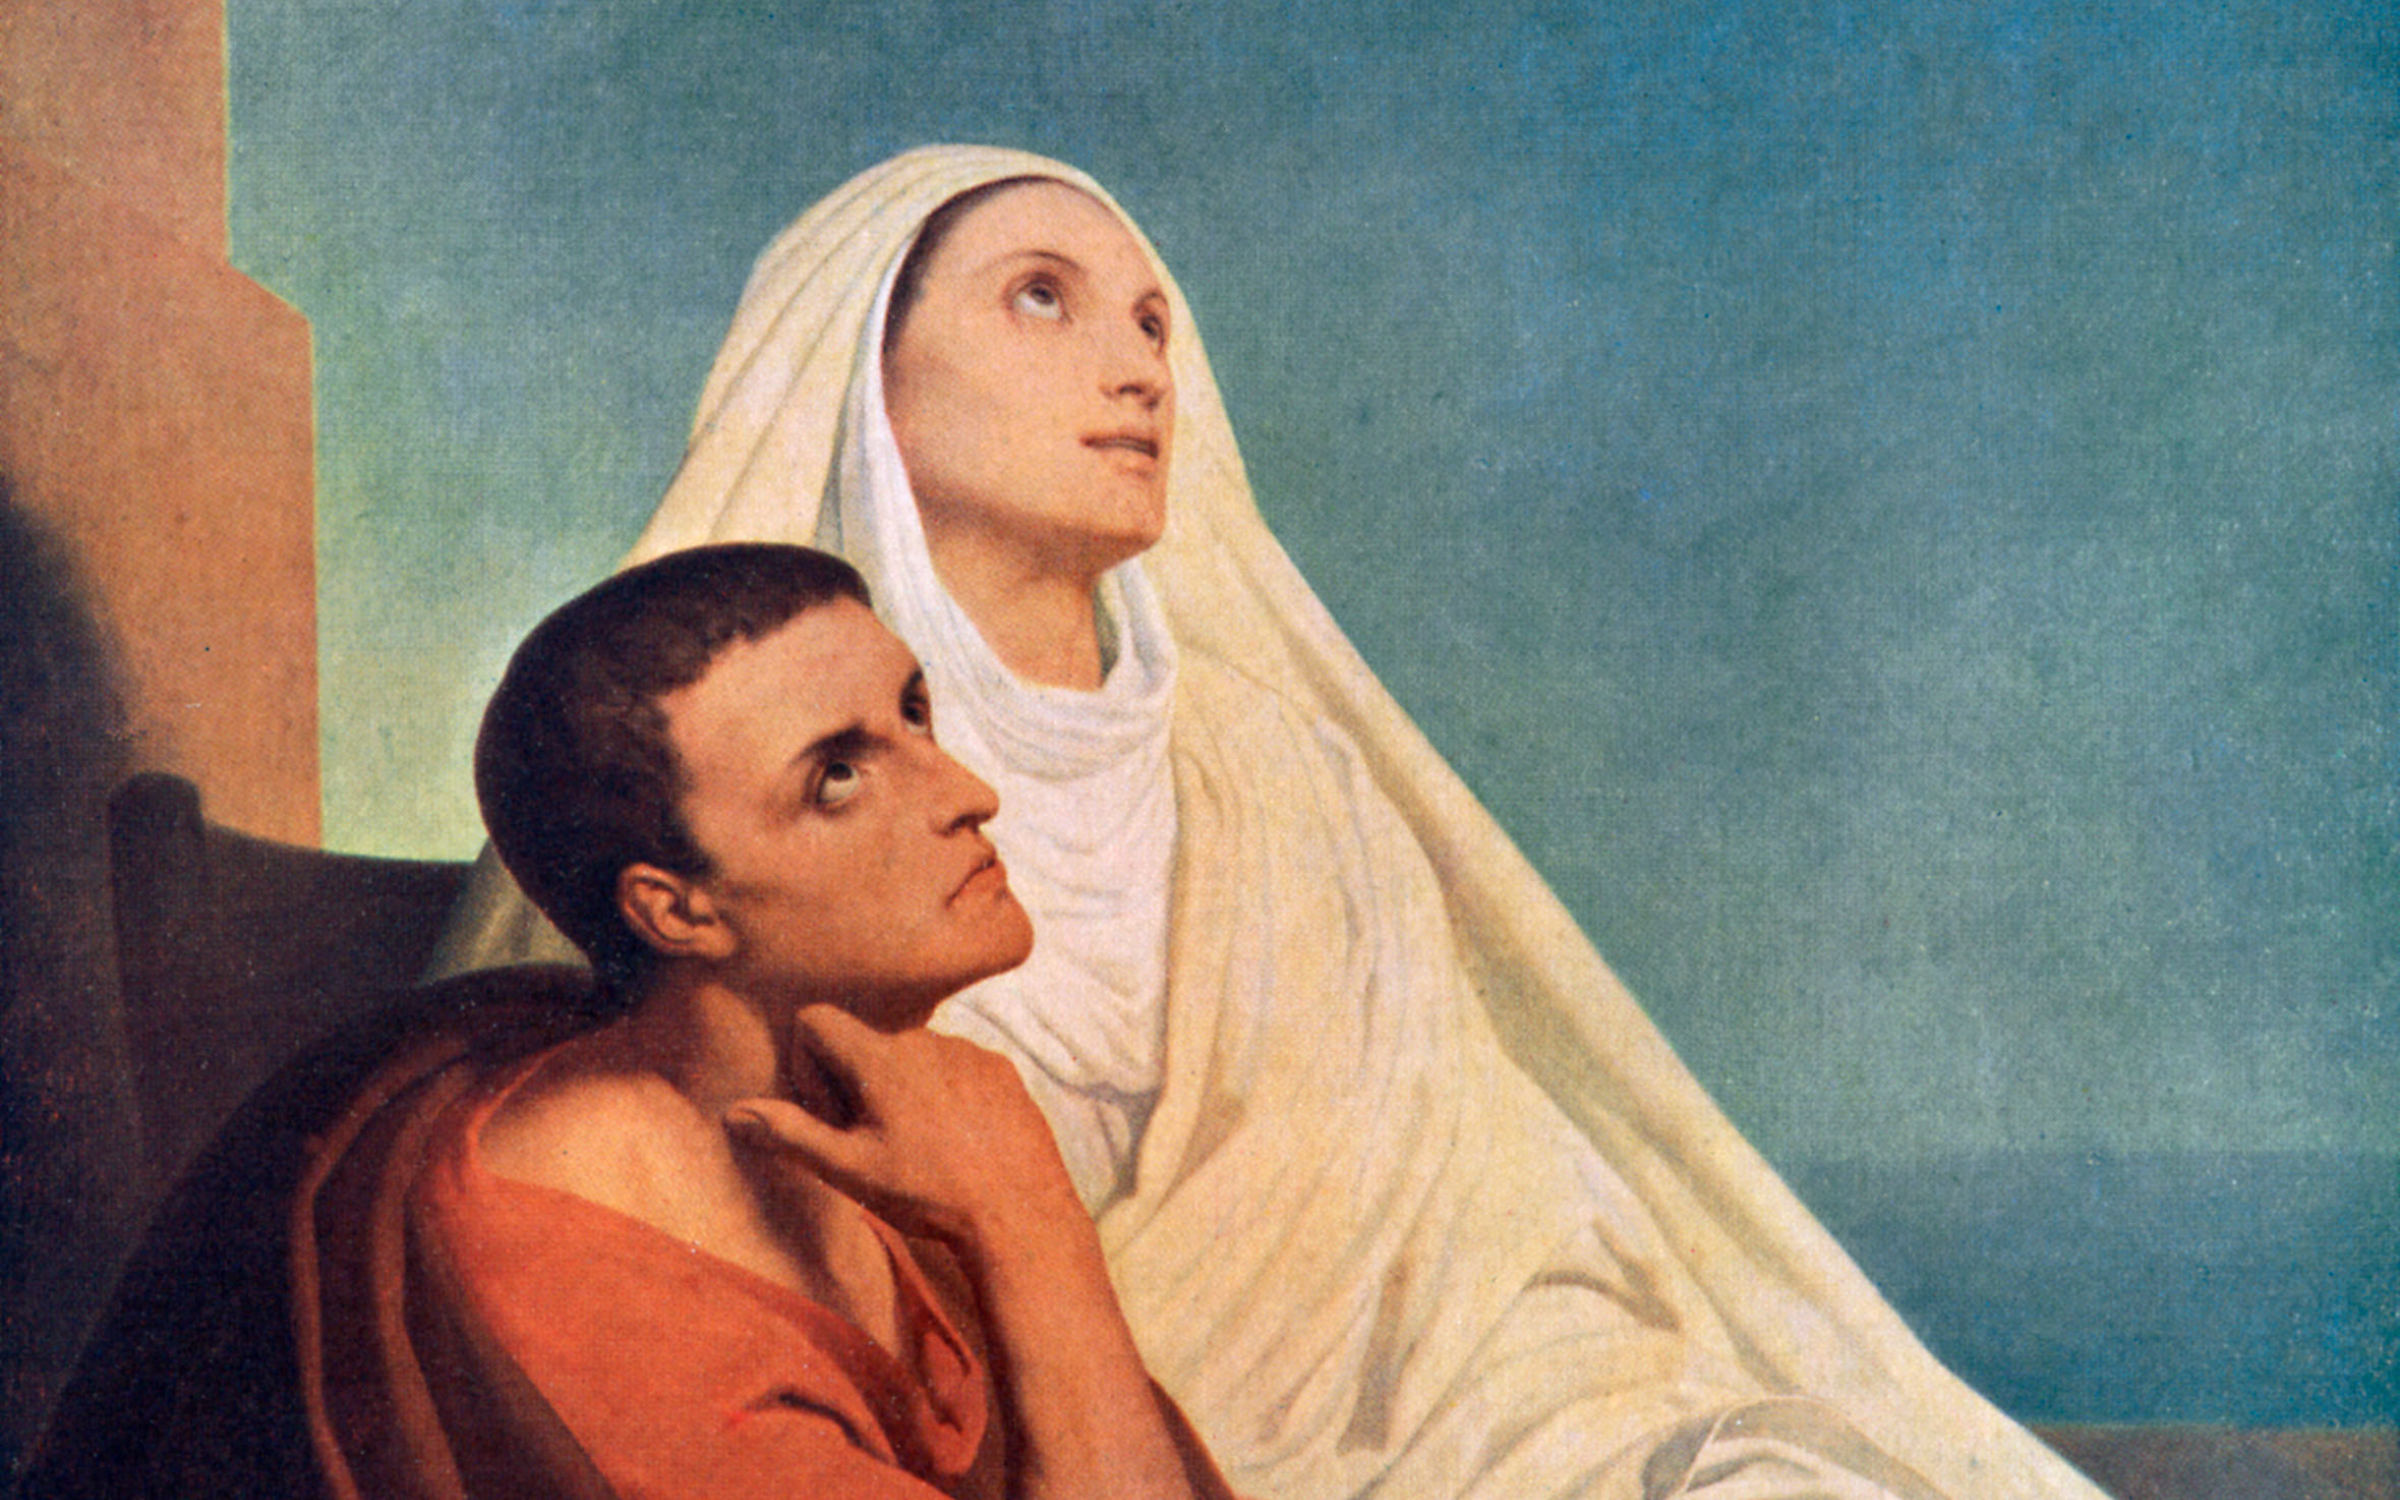 Ary Scheffer's 1855 'Saint Augustine and Saint Monica'. Credit: Waverley Book Club/The Print Collector for Getty Images.